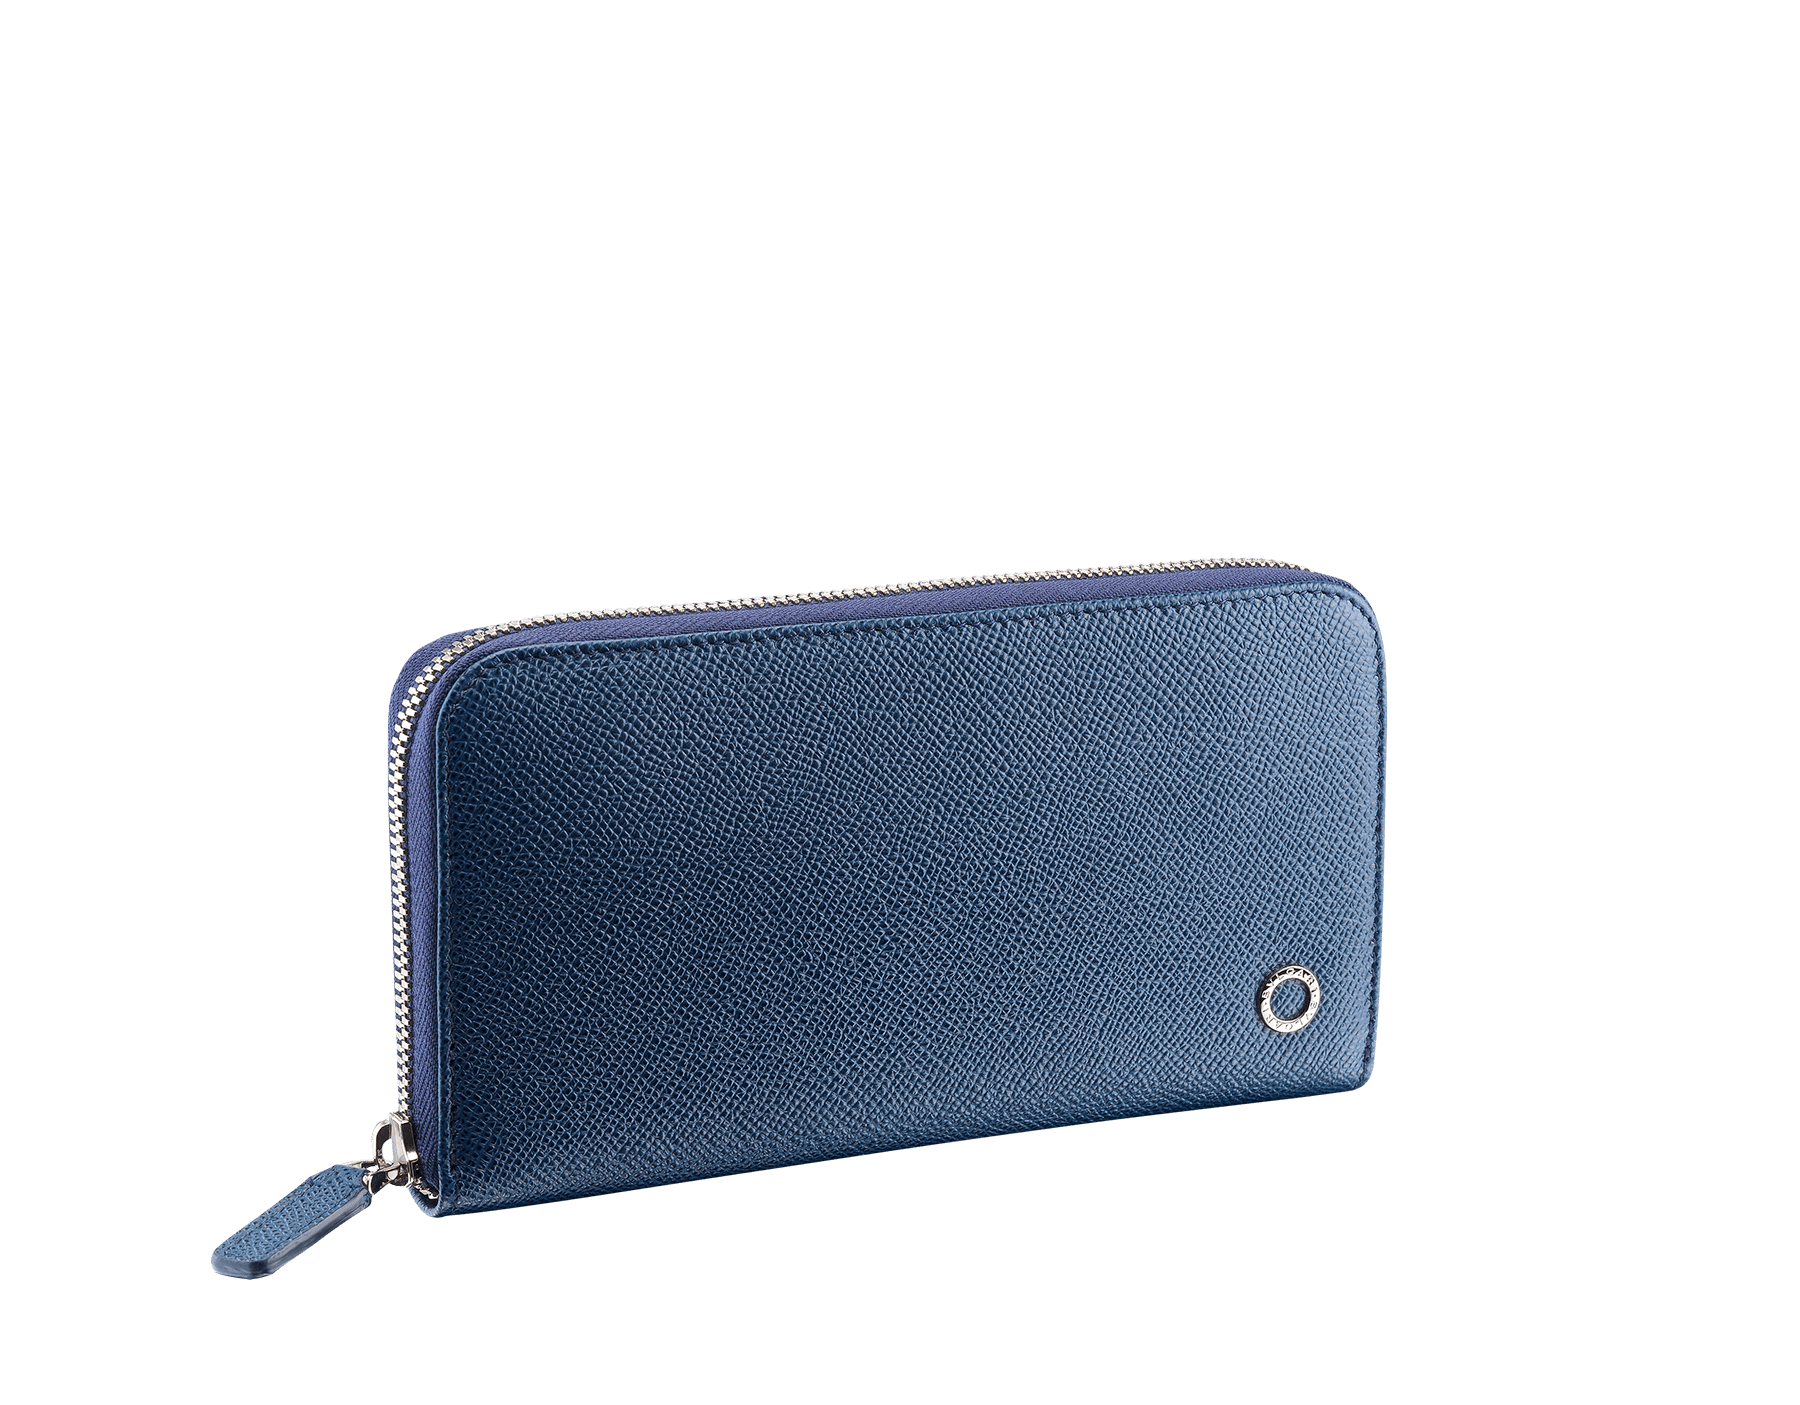 """BVLGARI BVLGARI"" large zipped wallet in Pluto Stone gray and Denim Sapphire blue grained calf leather. Iconic logo-bearing embellishment in palladium-plated brass. BBM-WLT-M-ZIPa image 1"